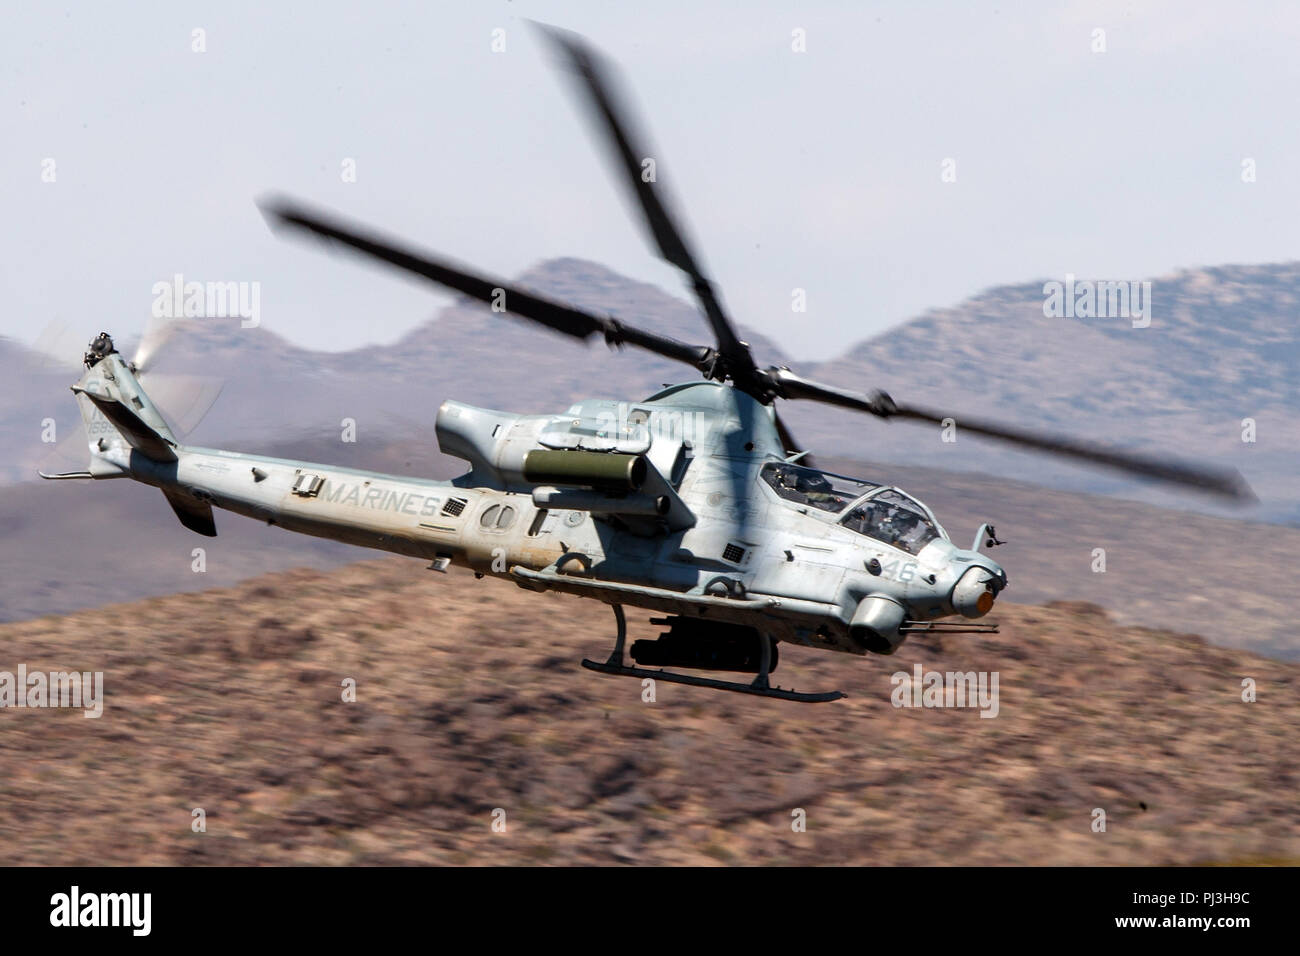 United States Marines Corps Bell AH-1Z Viper (SN 168529) flies low level on the Jedi Transition through Star Wars Canyon / Rainbow Canyon, Death Valley National Park, Panamint Springs, California, United States of America - Stock Image